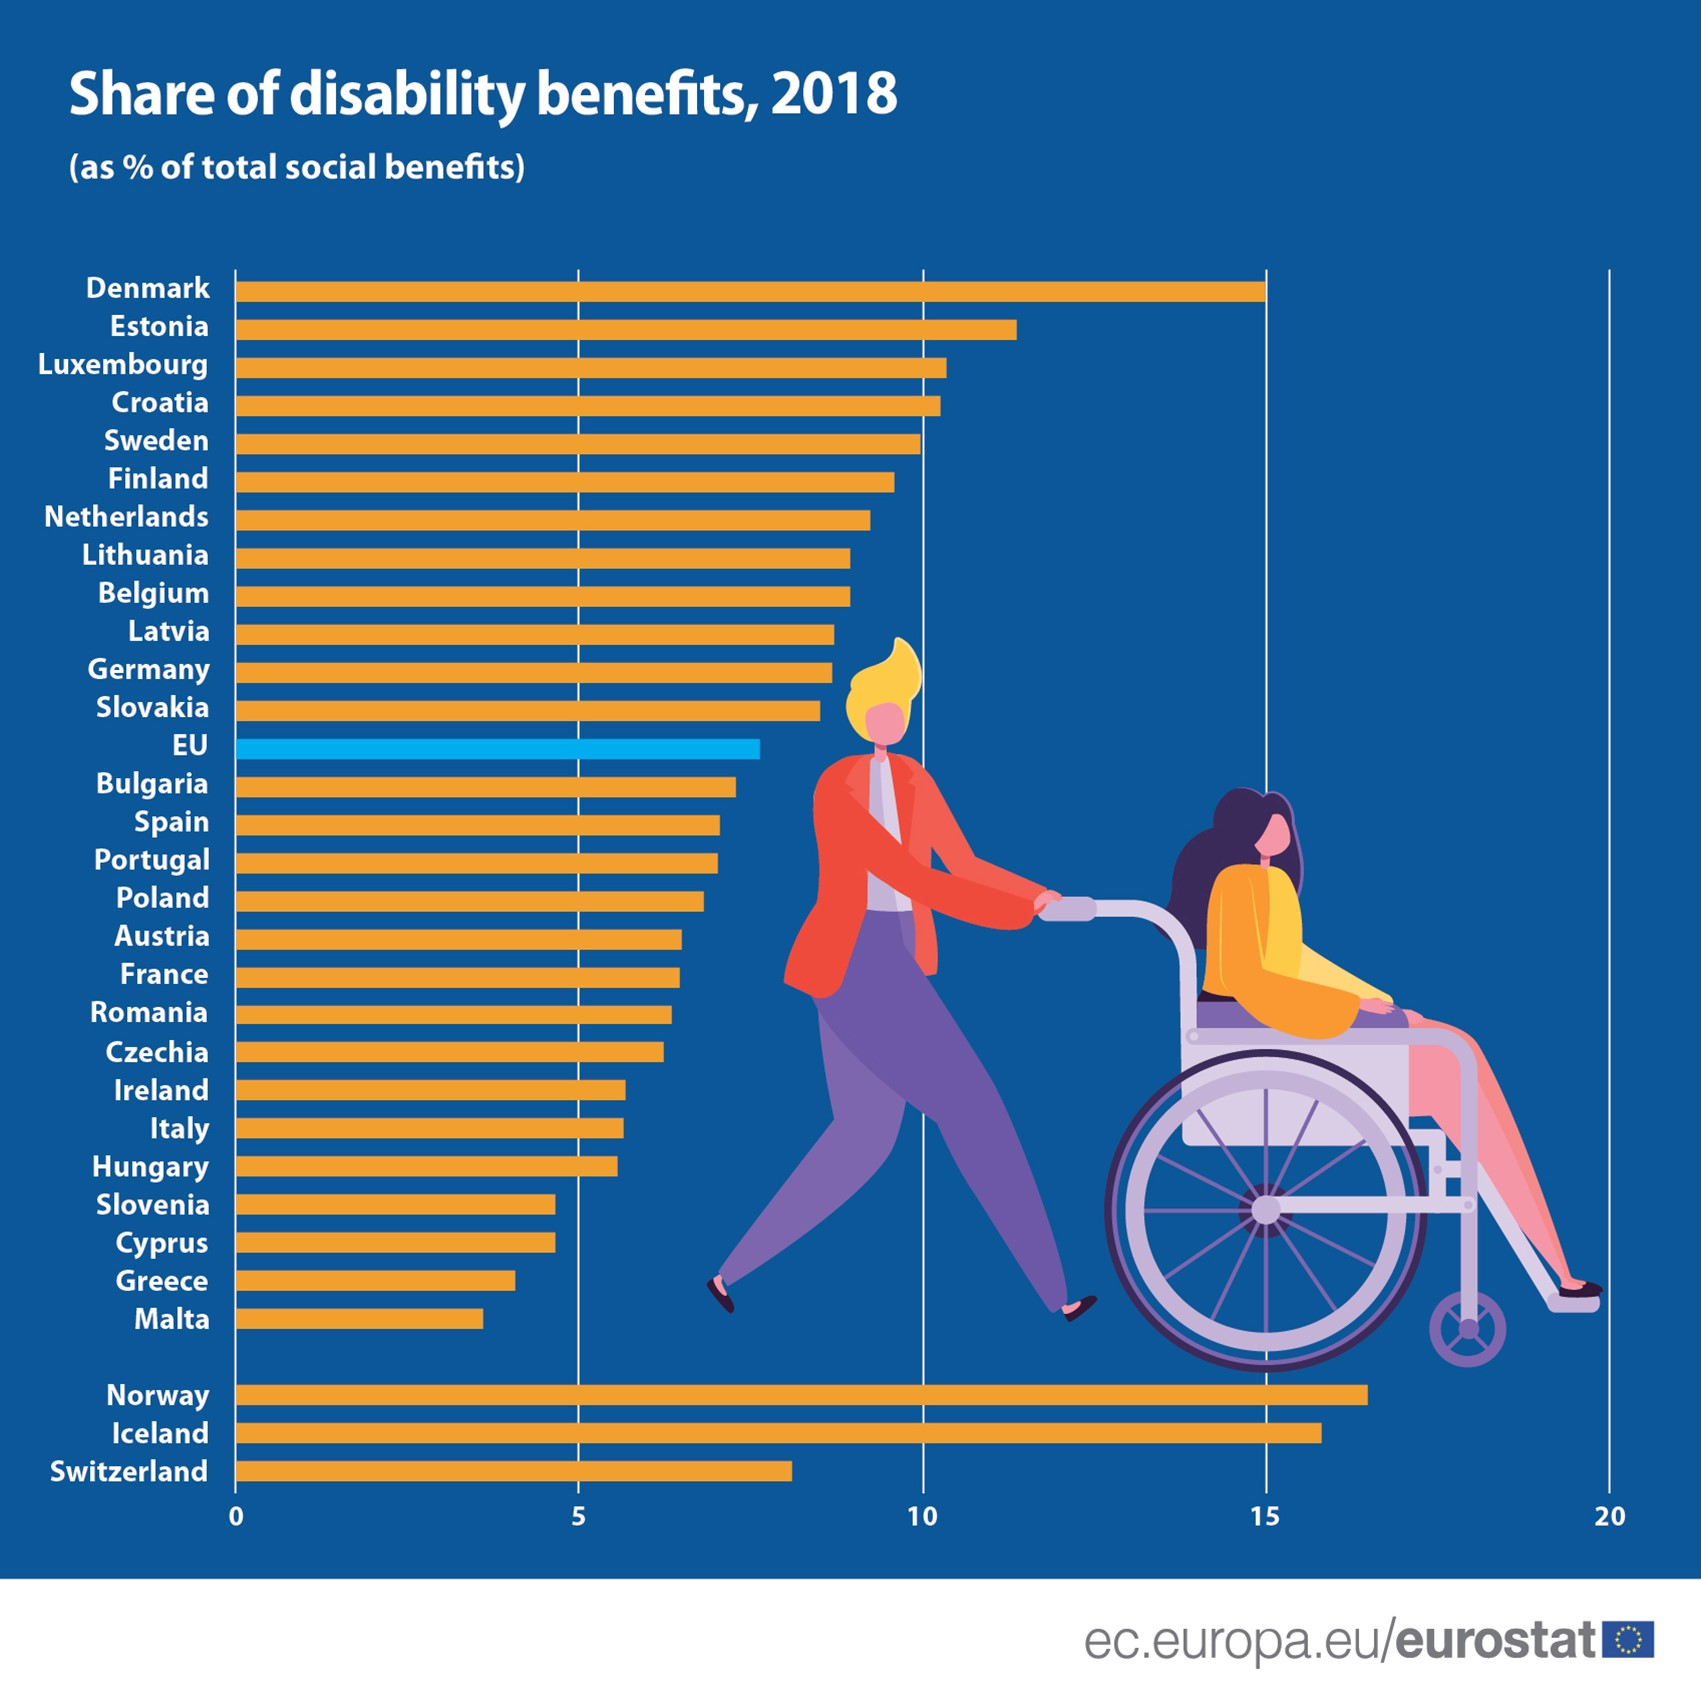 Share of disability benefits